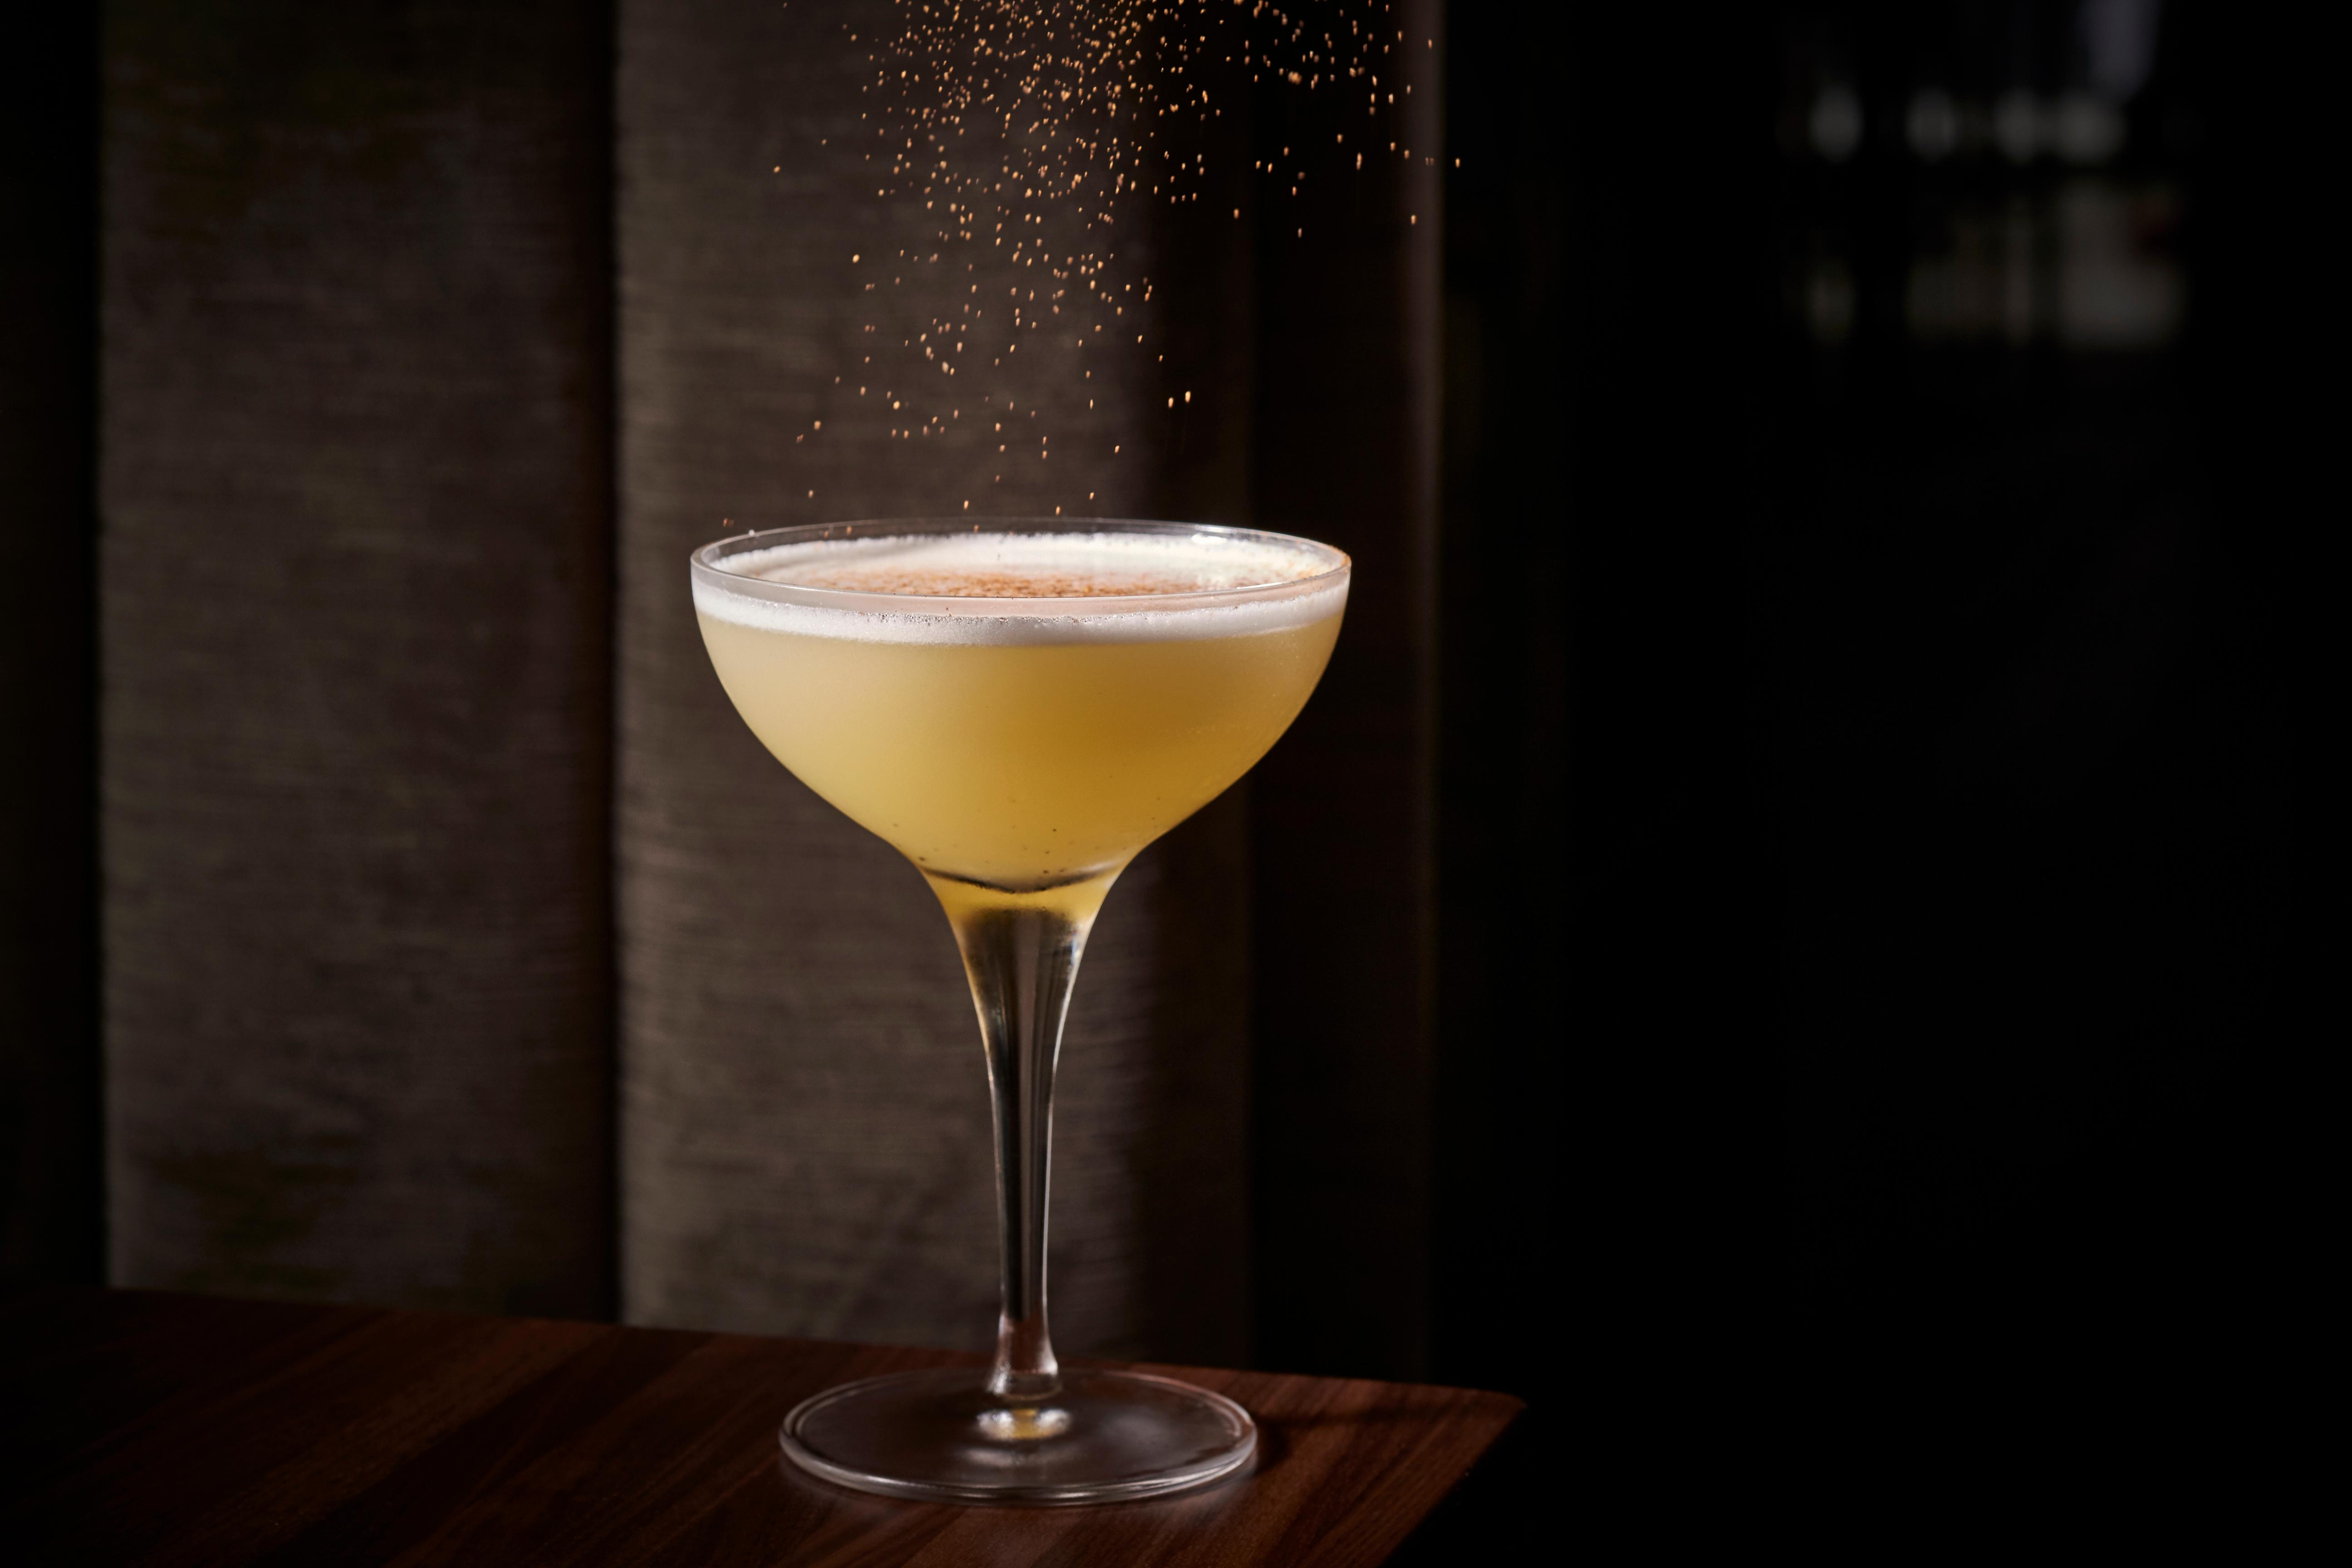 Allo Allo -- Tequila Reposado, Mezcal Joven, Ginger, Honey, Lemon. On the menu at Requin at the Wharf. (Image: Greg Powers)